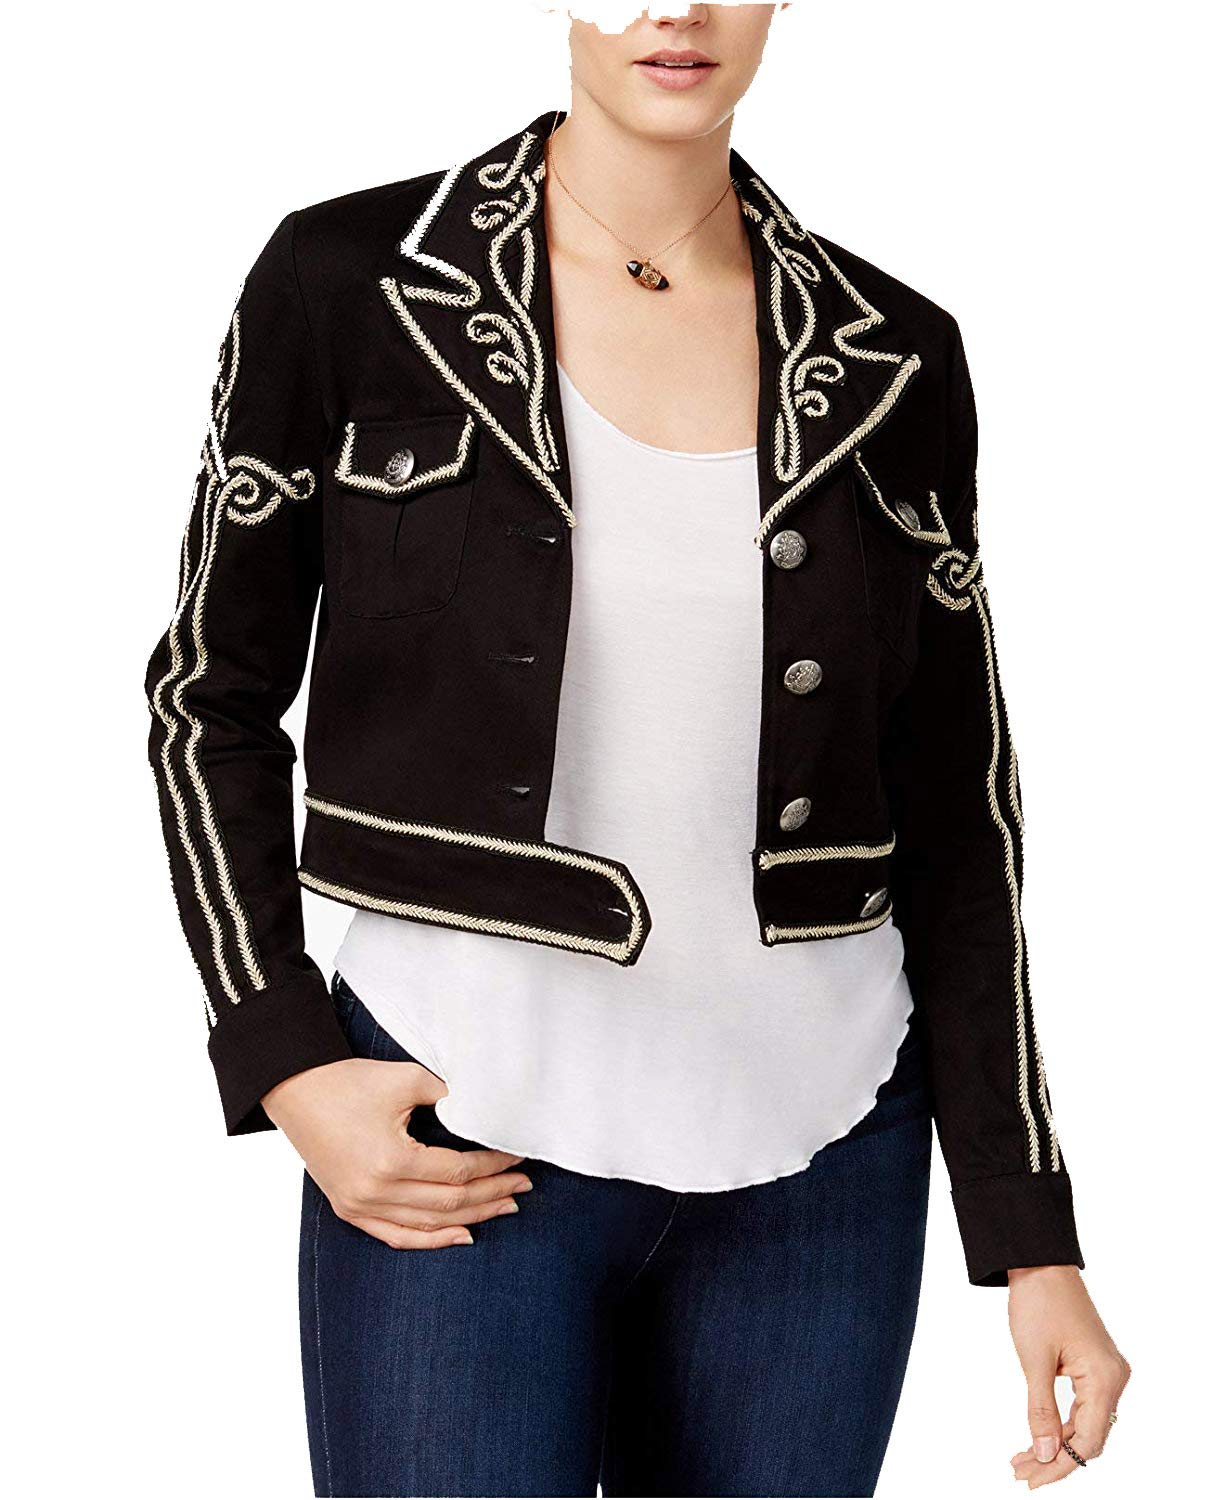 XOXO Juniors' Embroidered Cropped Jacket (Black, XL)